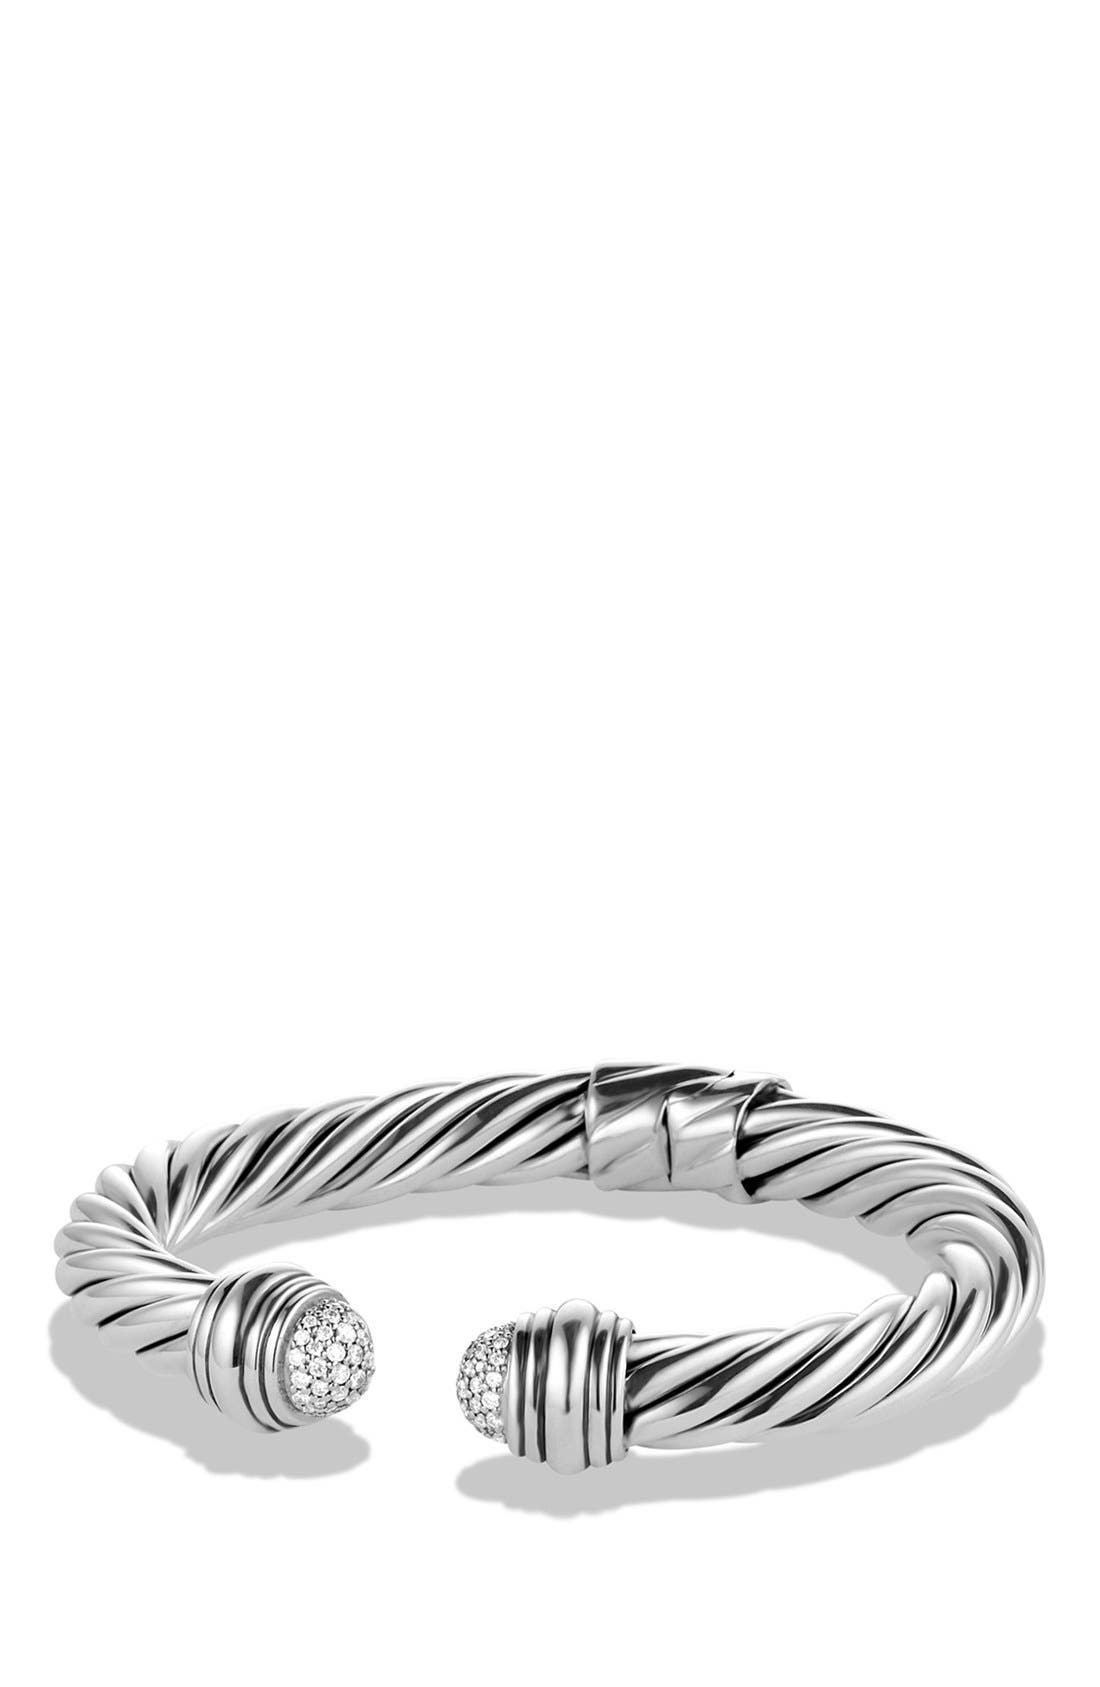 DAVID YURMAN 'Cable Classics' Pavé Tip Bracelet with